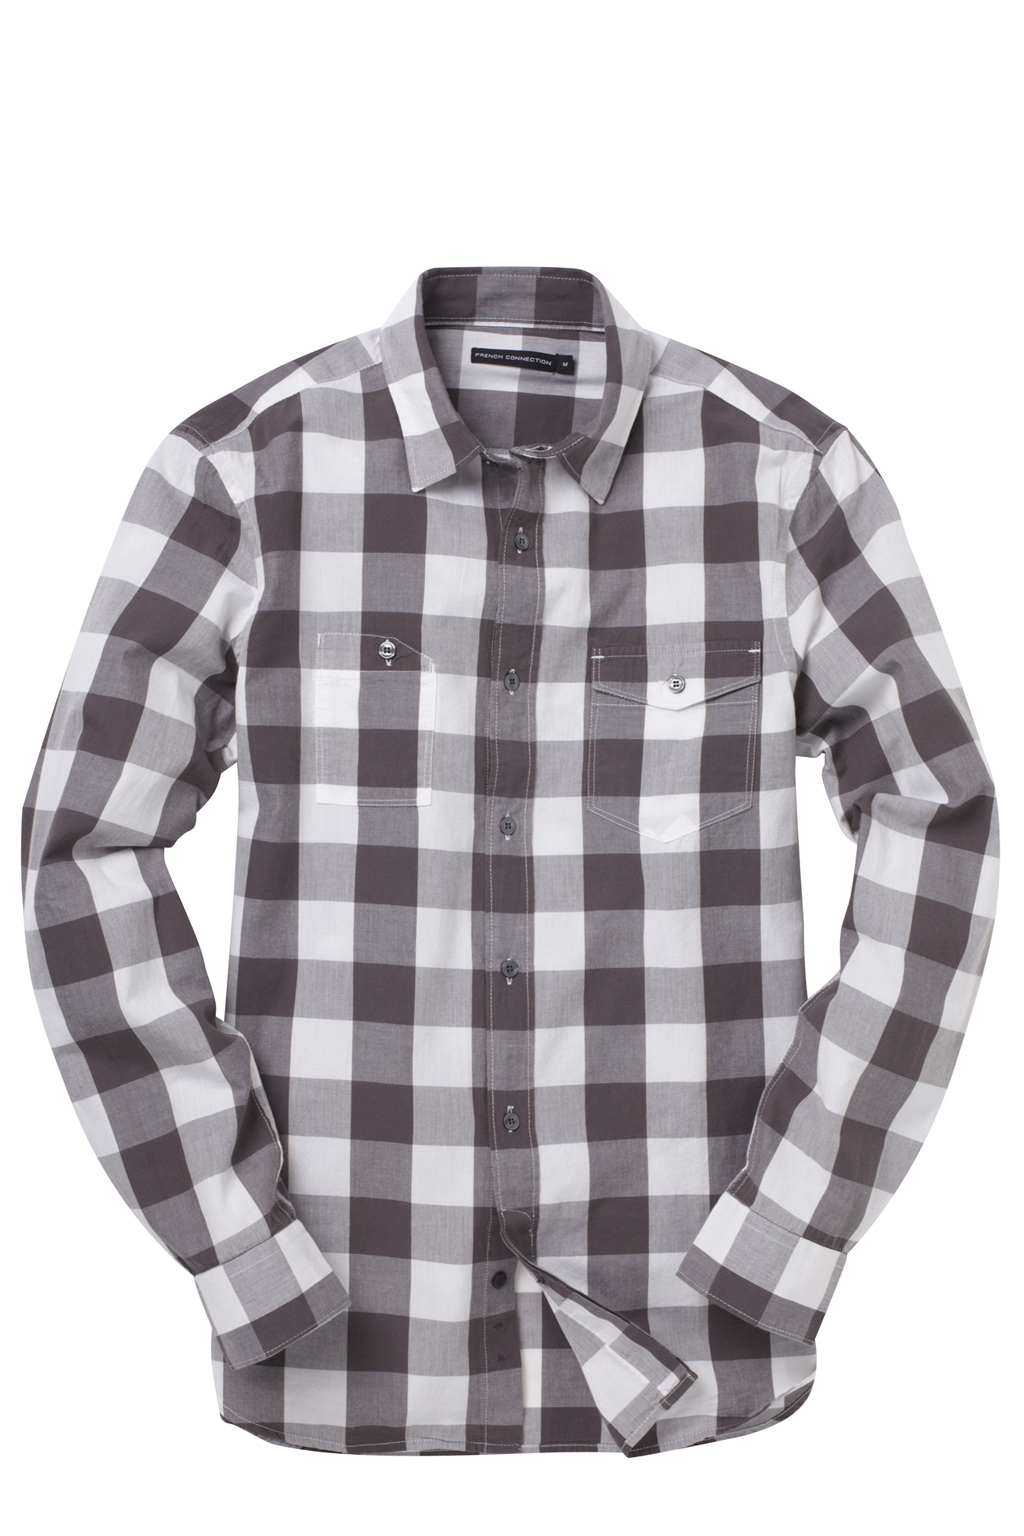 New-French-Connection-Long-Sleeve-Cotton-Check-Shirt-Grey